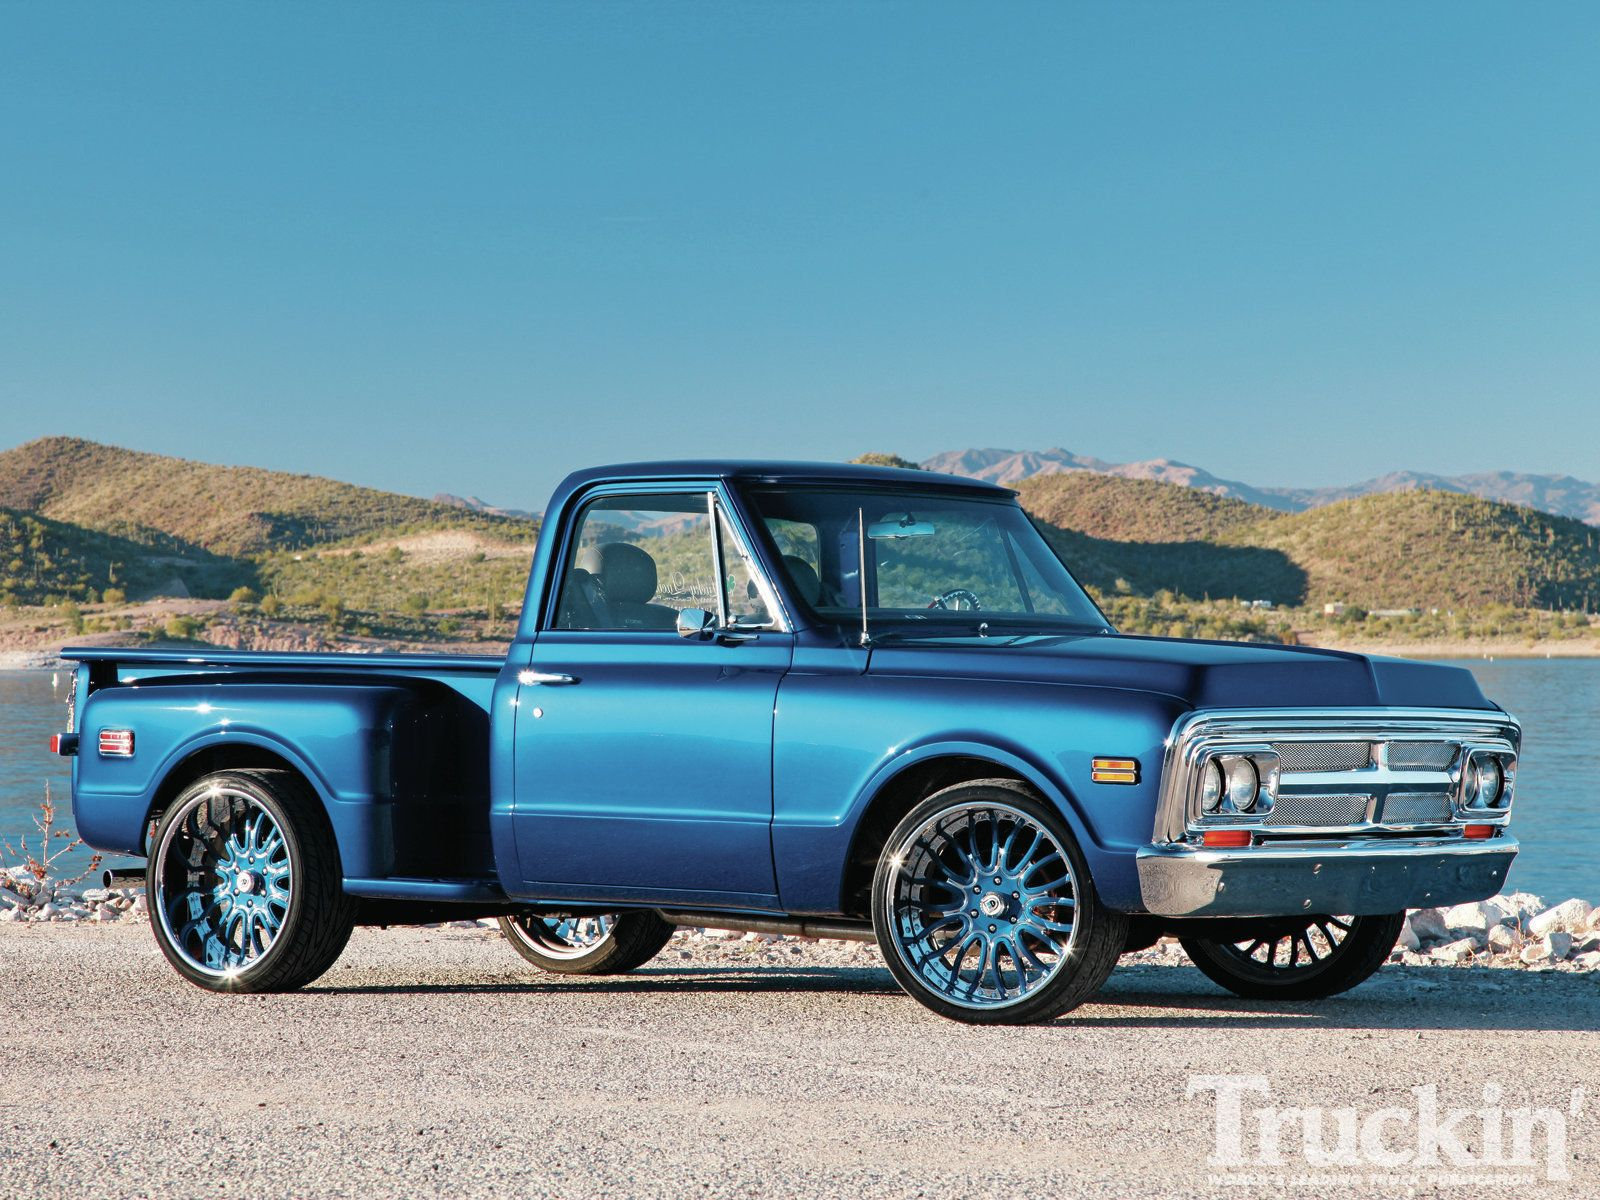 1970 Gmc C10 Code Blue Left Angle Photo 1 Custom trucks